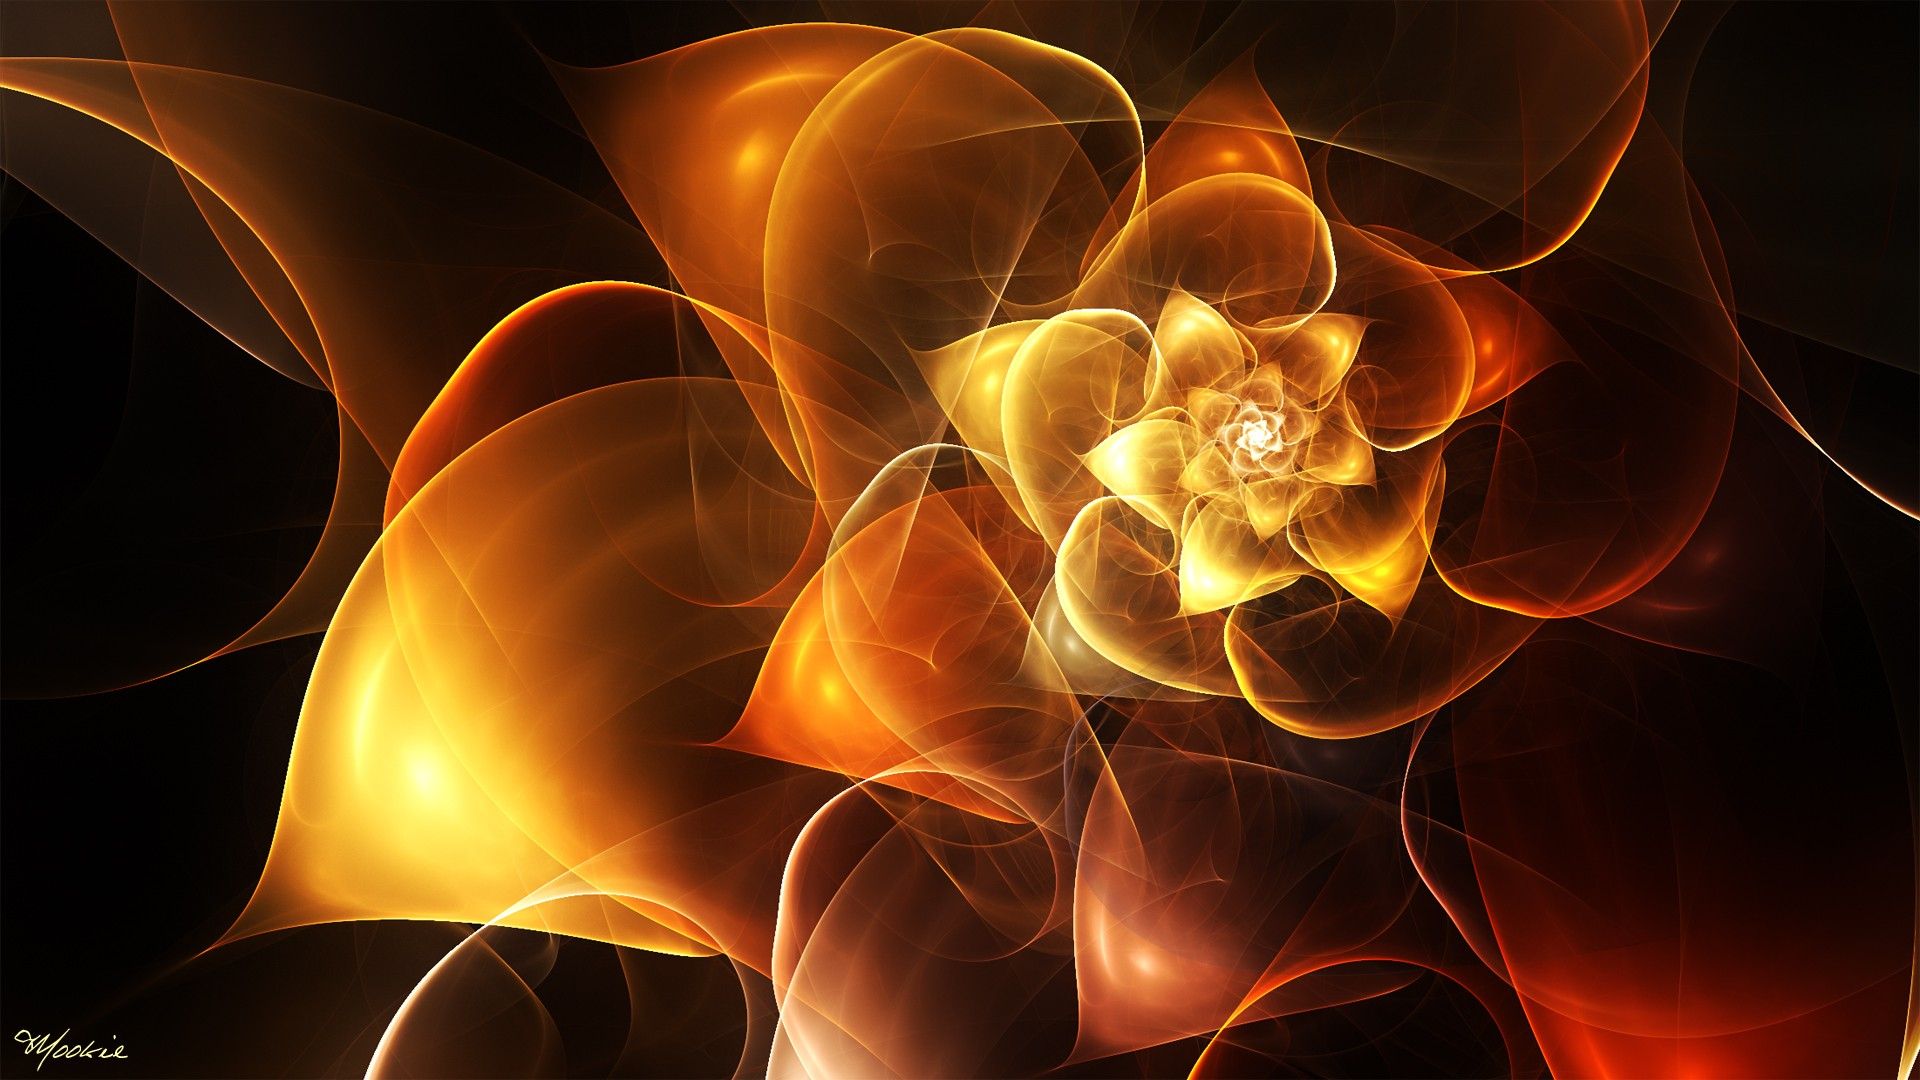 Spontaneous Evolution: New Scientific Realities Are Bringing Spirit Back into Matter Flowers-fractals_00387107